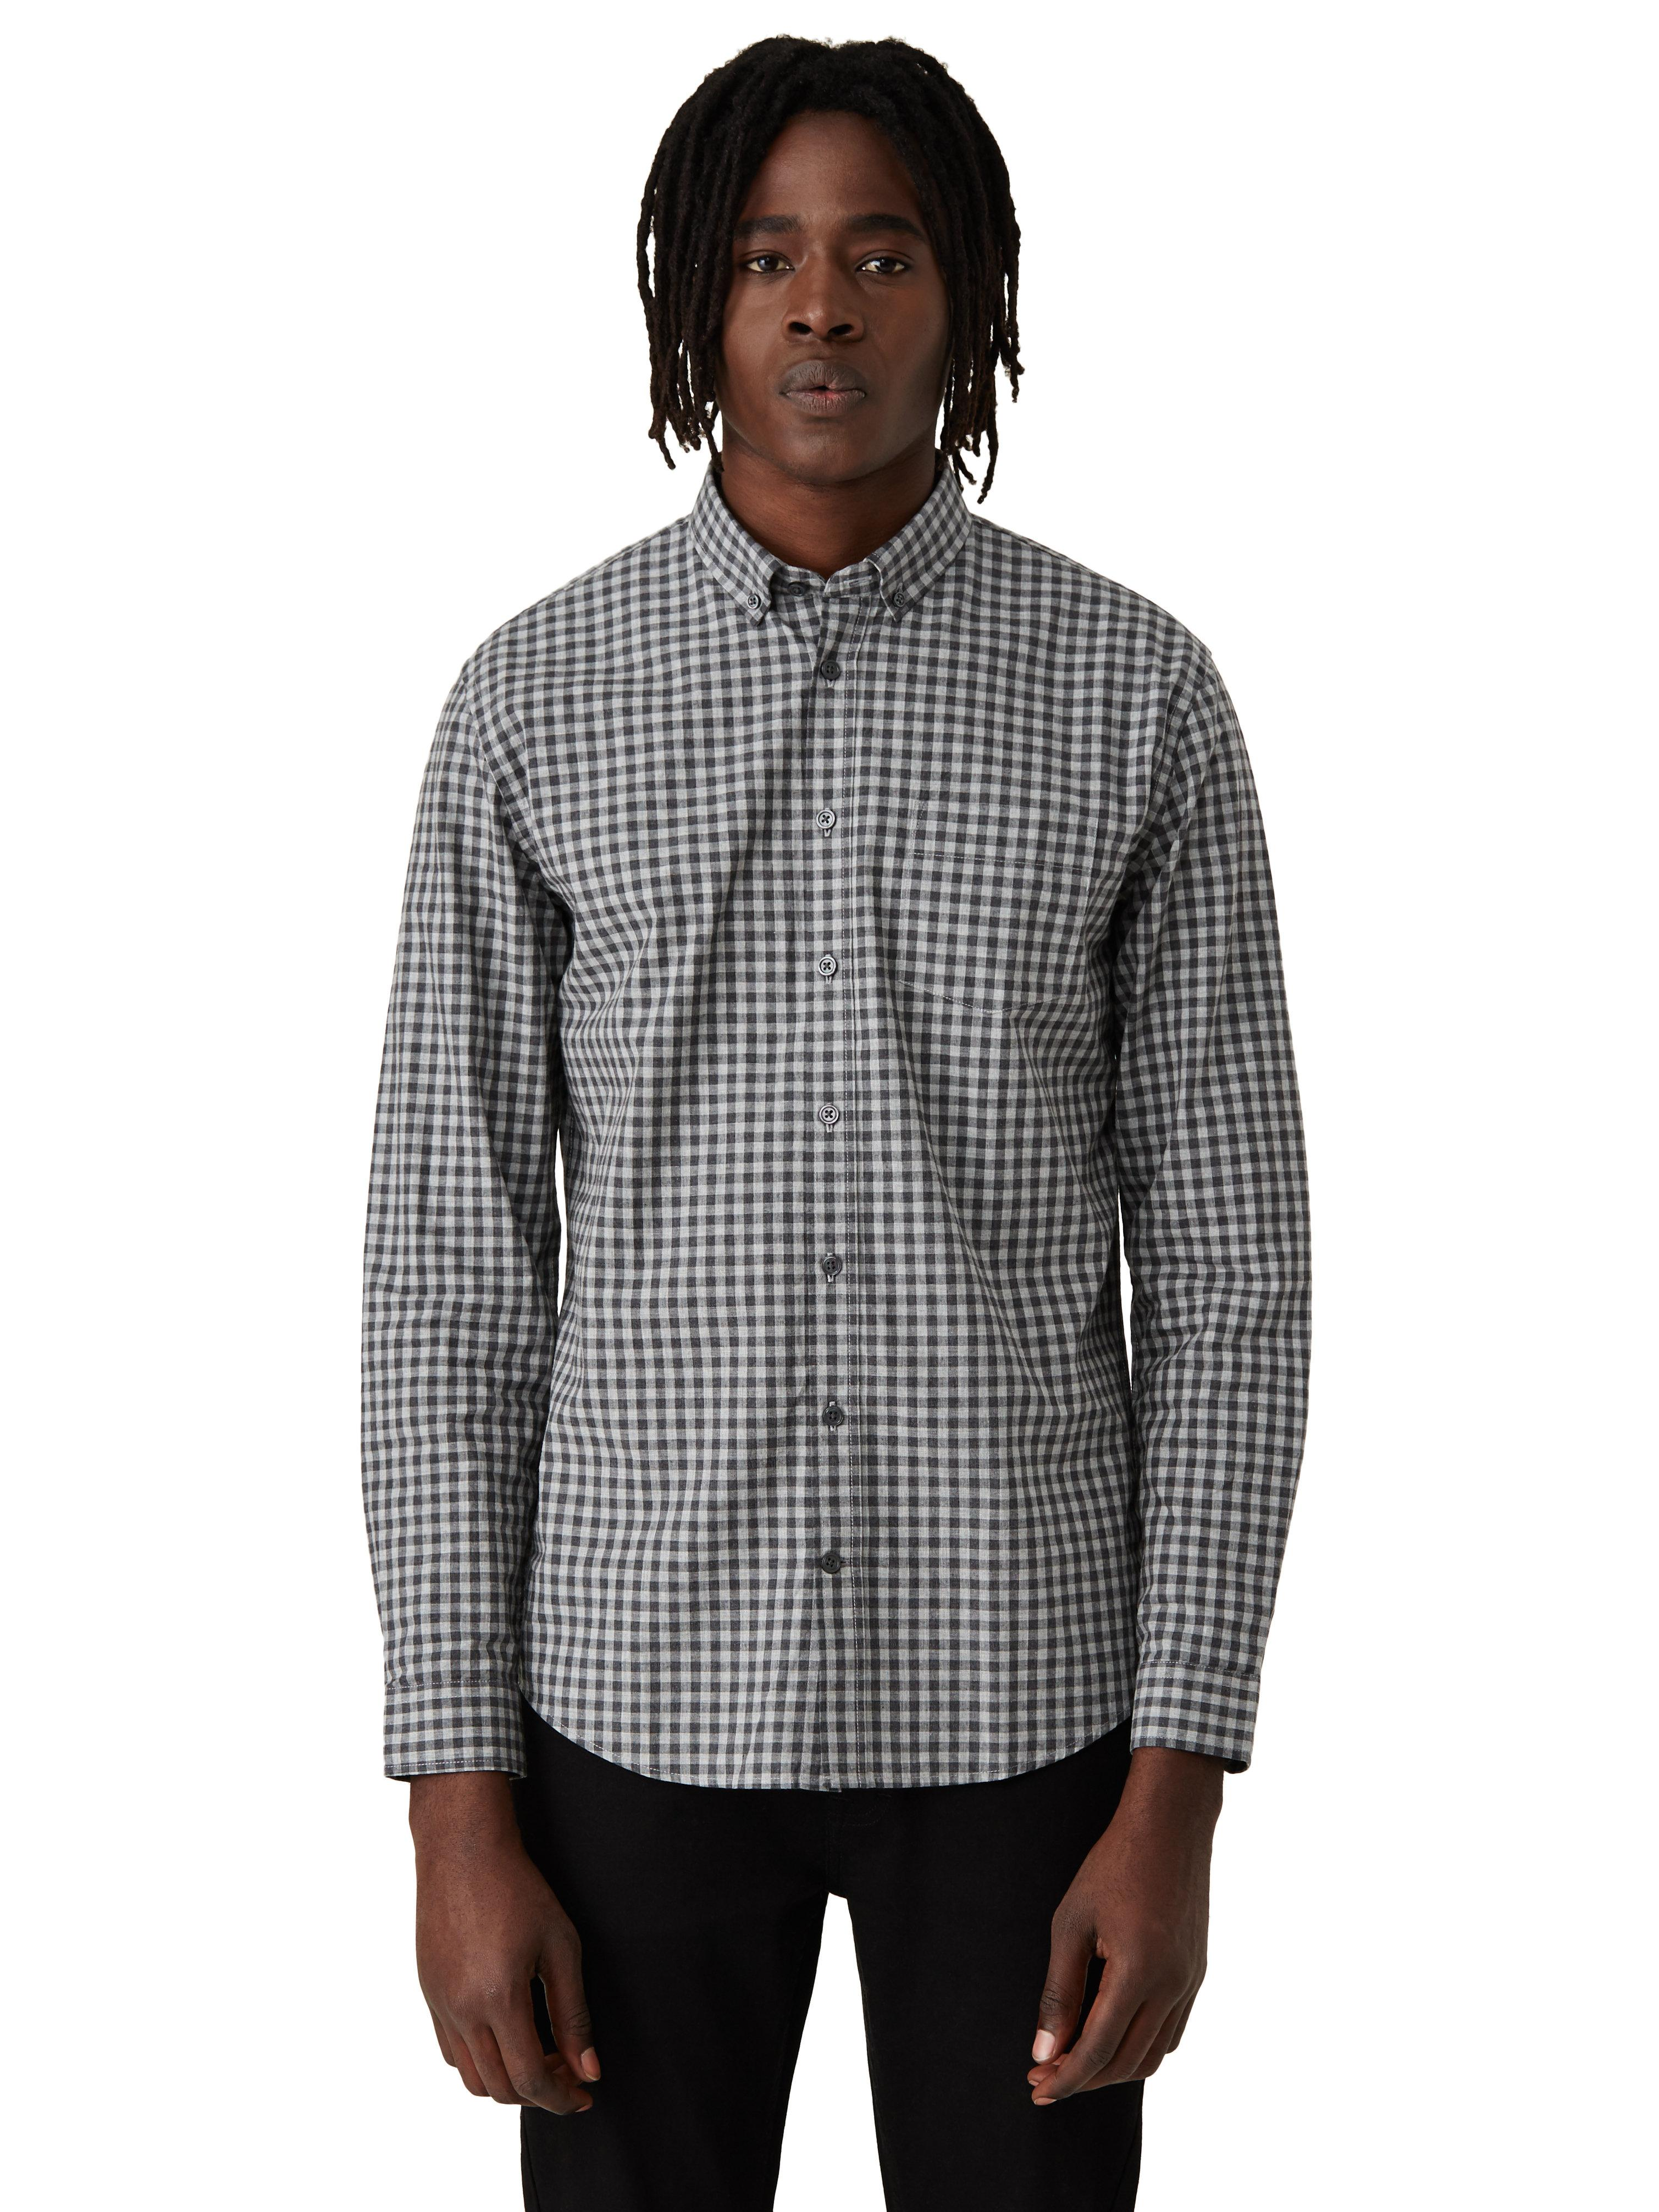 Frank oak branford small gingham shirt in grey in gray for Frank and oak shirt